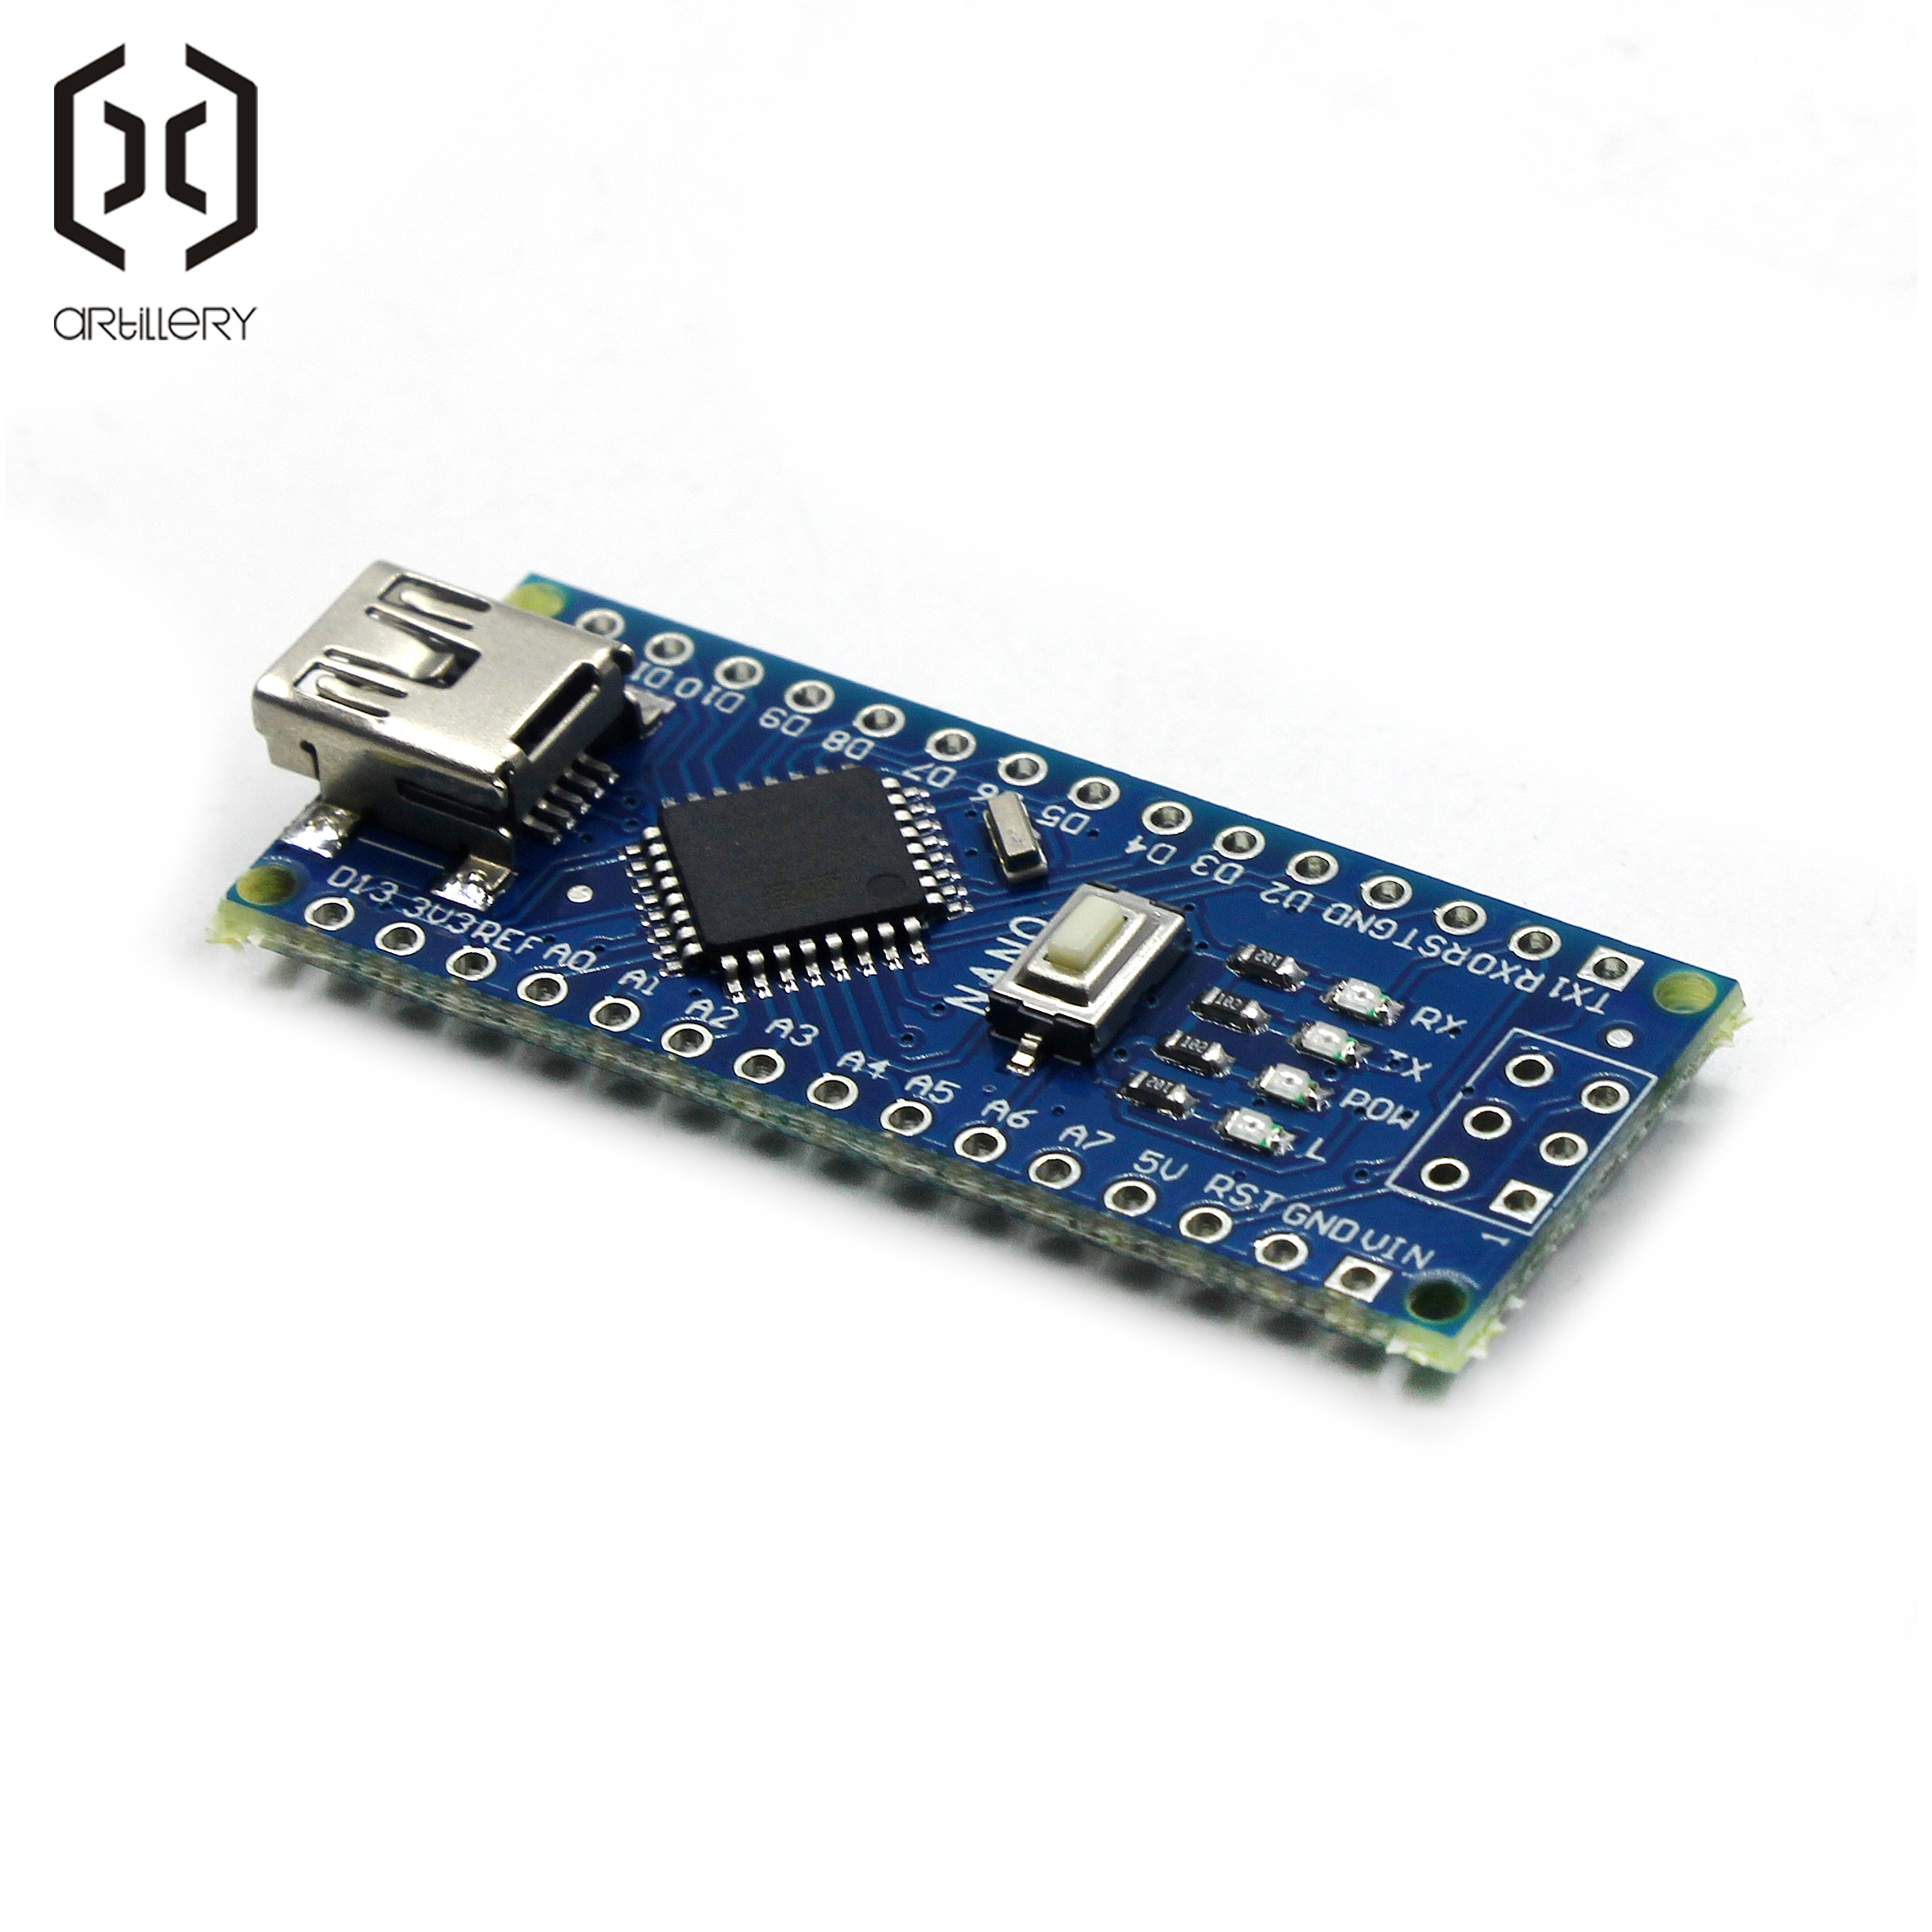 MINI USB Nano V3.0 ATmega328P CH340G Controller Development Board Module NANO 328P NANO 3.0 For Arduino Diy Kit